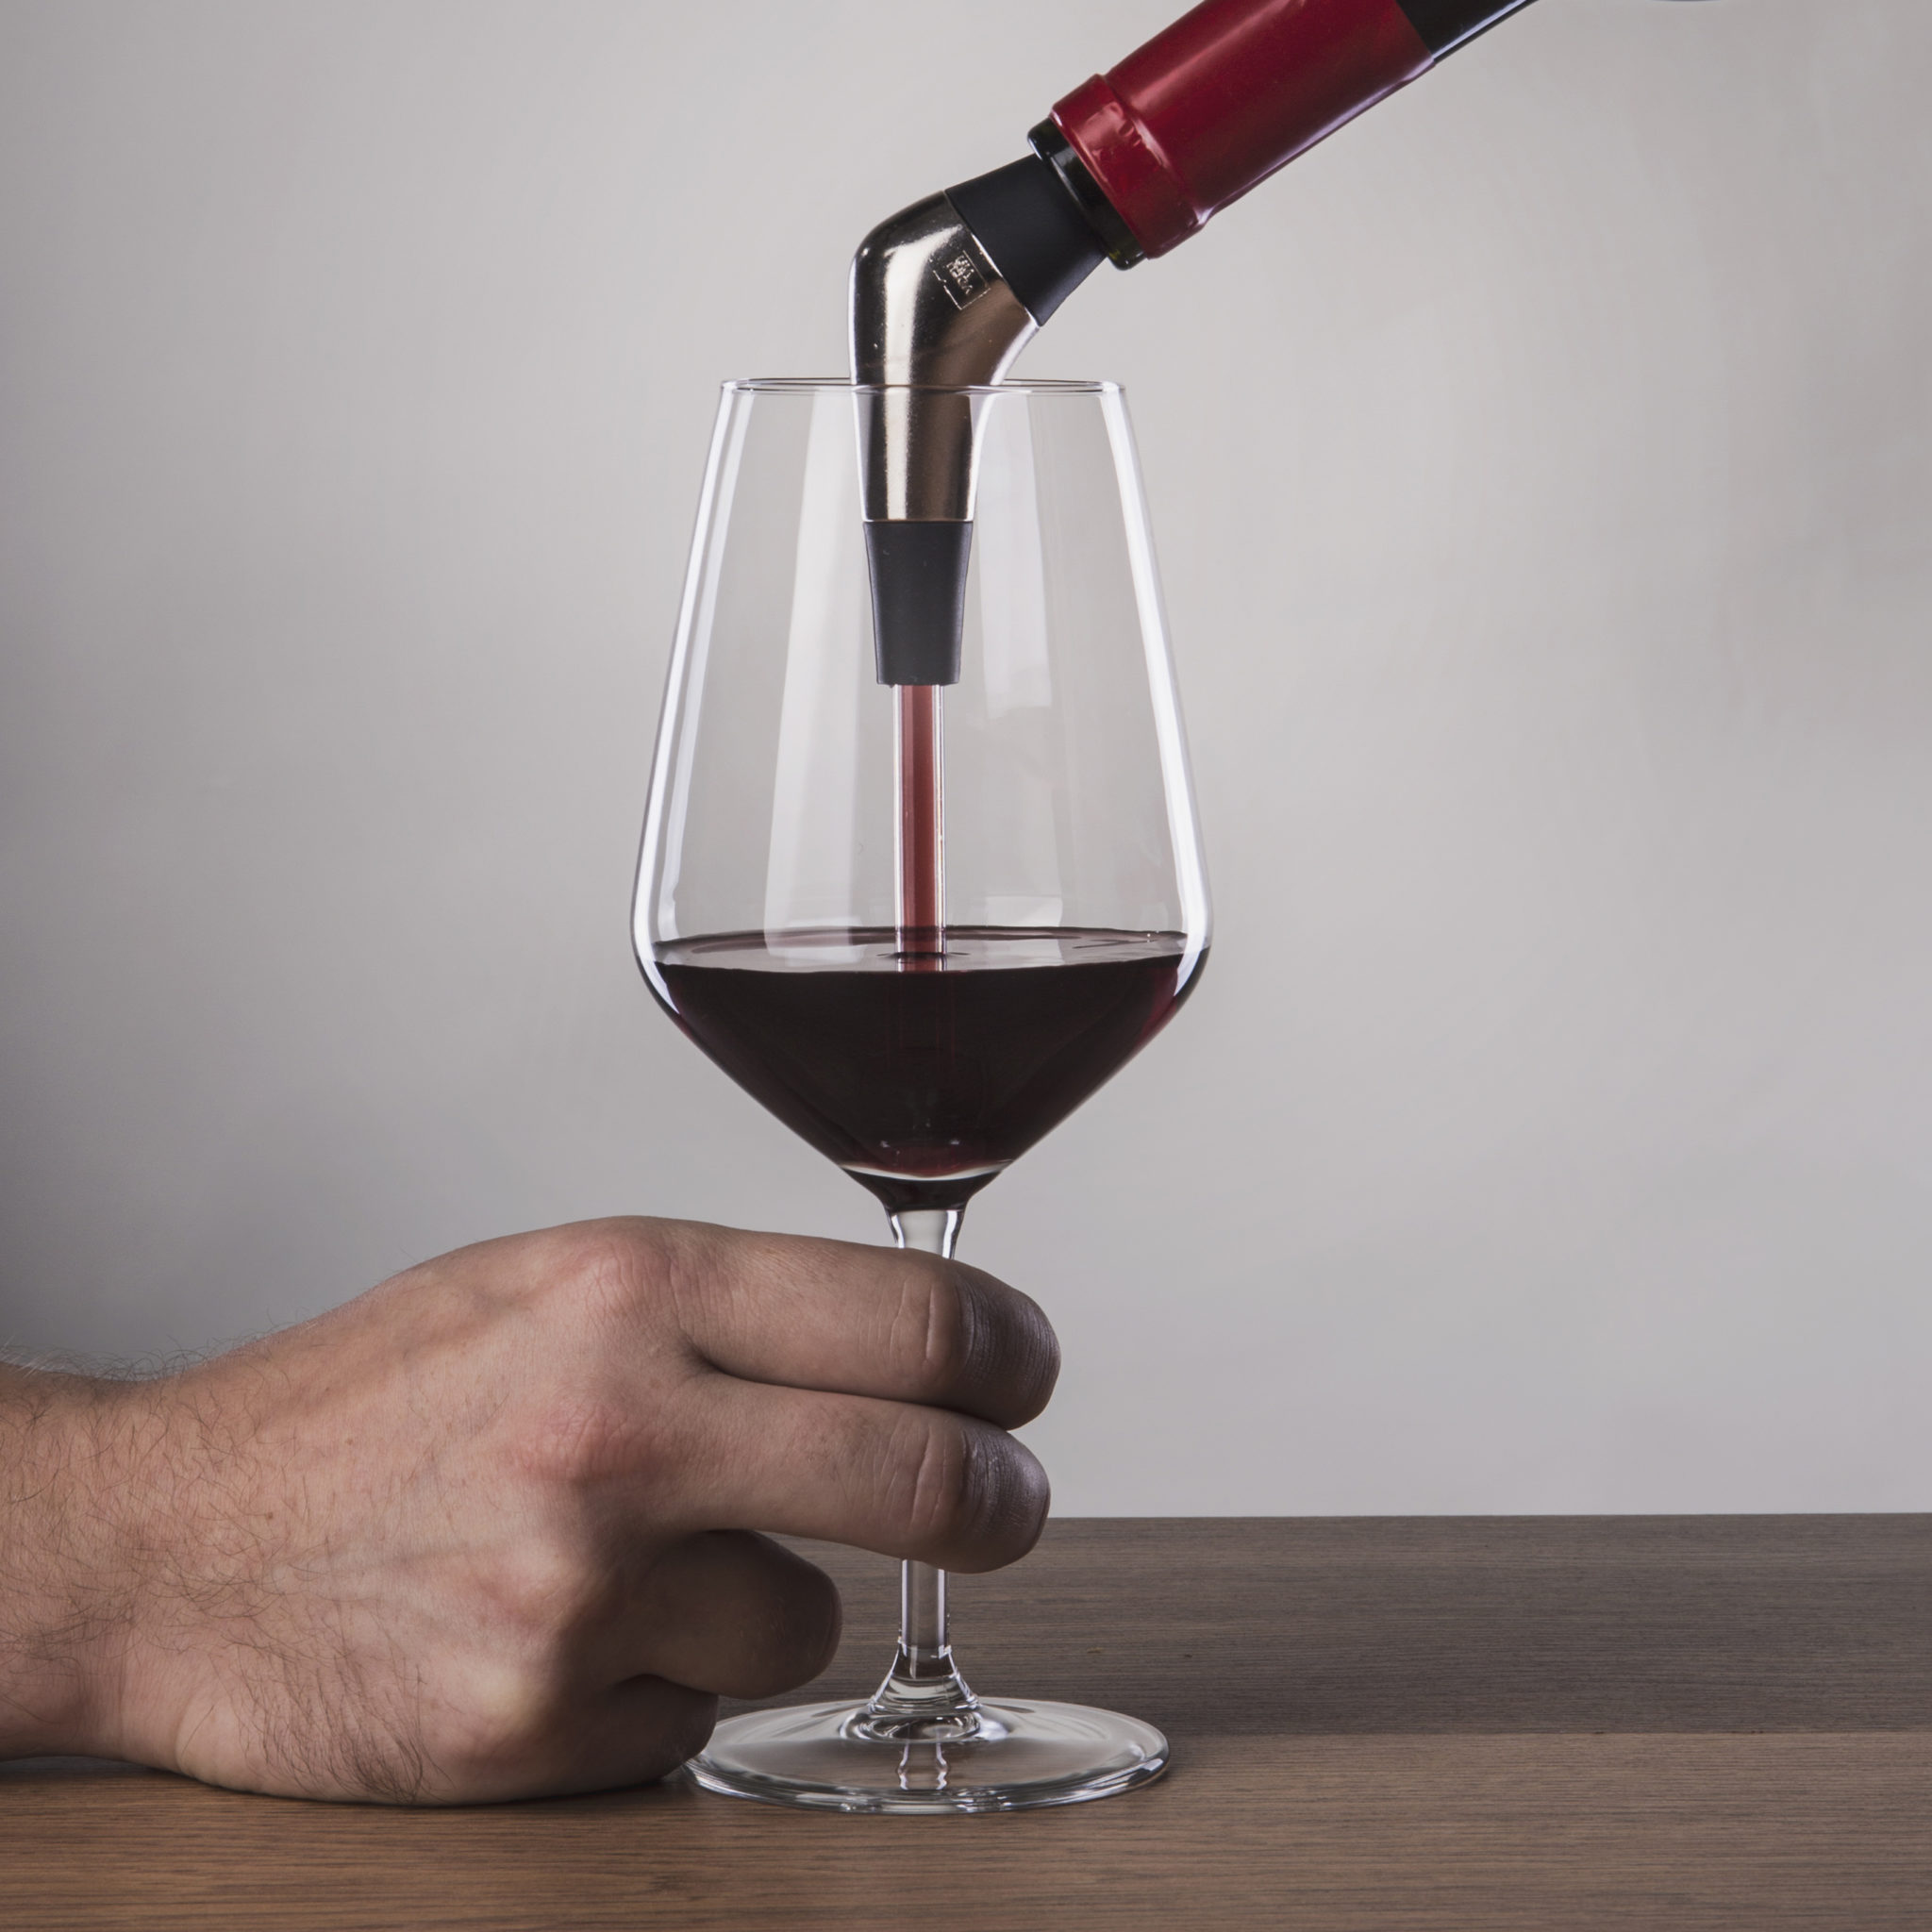 Introducing the Slow Wine Pourer